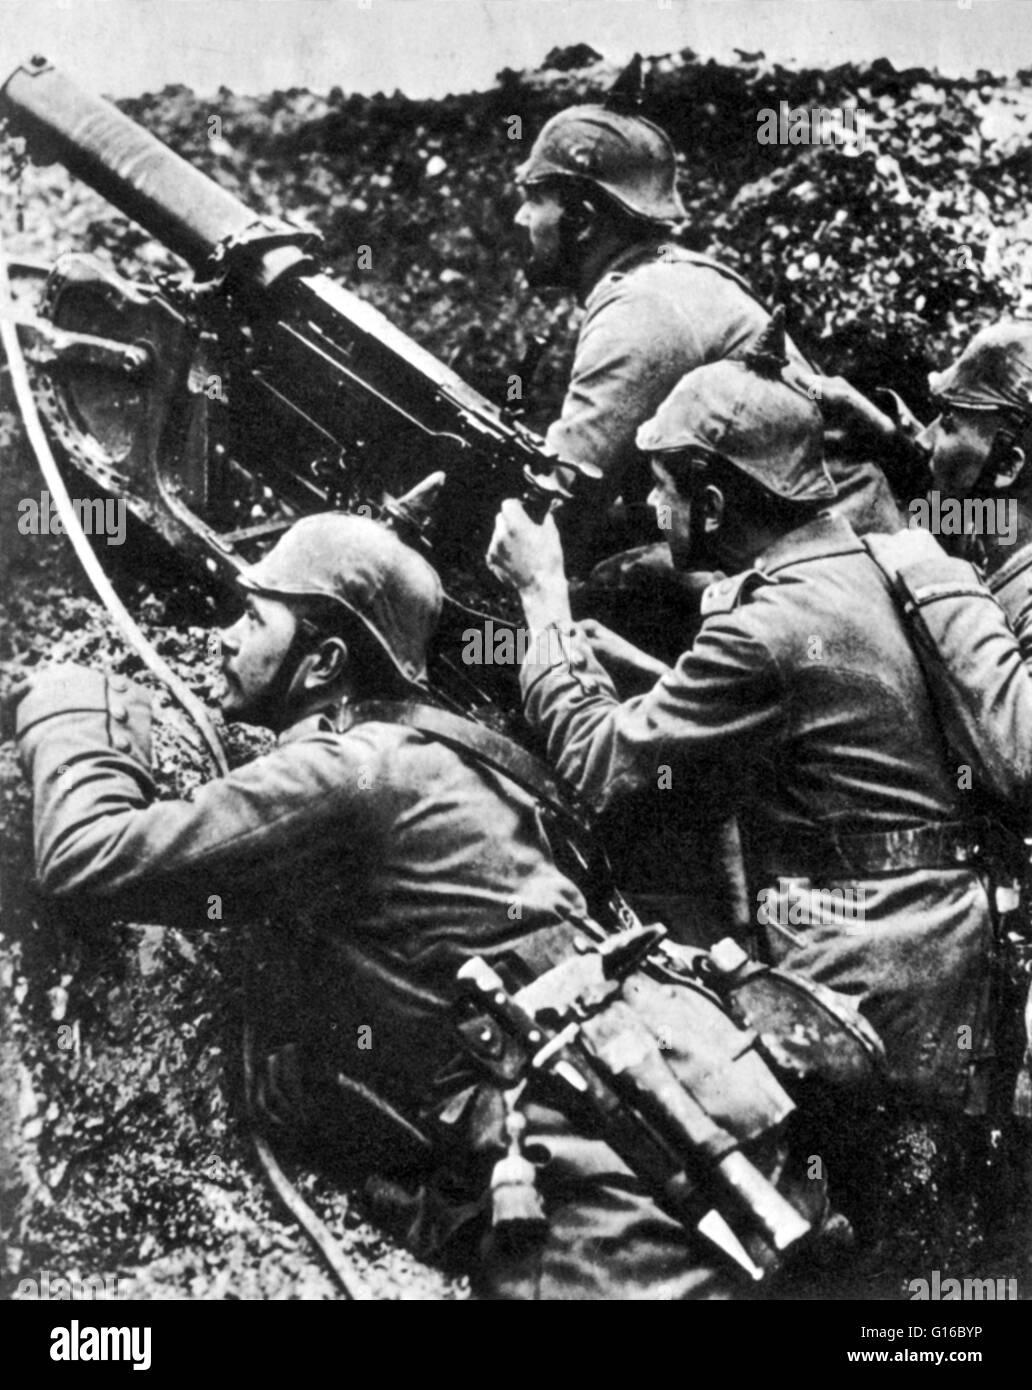 German machine gun crew. The Maschinengewehr 08, or MG 08, was the German Army's standard machine gun in WWI - Stock Image